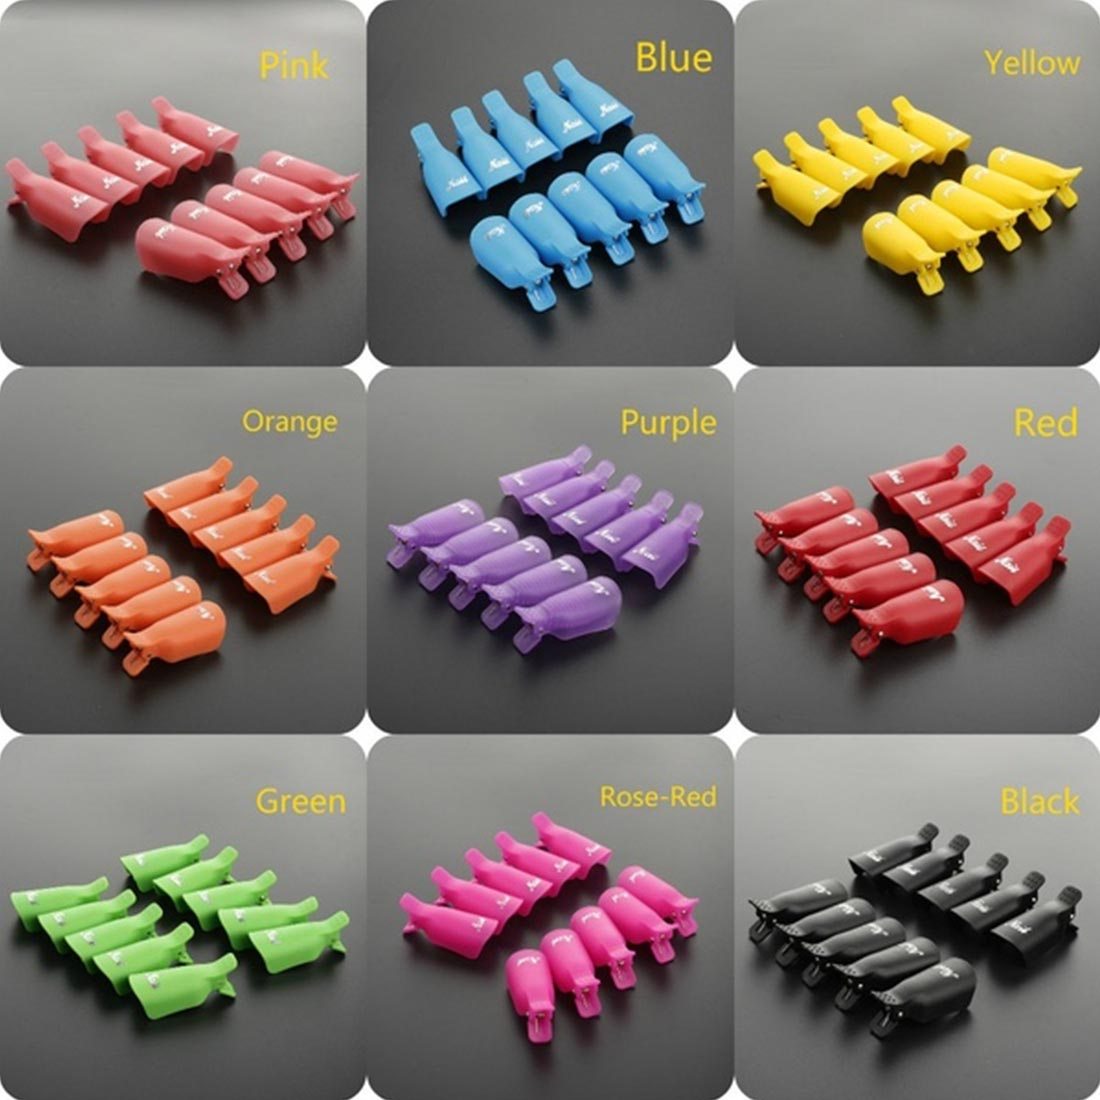 Image 4 - 10pcs UV Gel Remover Cap Clips for Gel Varnish Degreaser for Nails Manicure Clamps Plastic Acrylic Nail Art Soak Off Clip Cap-in Nail Polish Remover from Beauty & Health